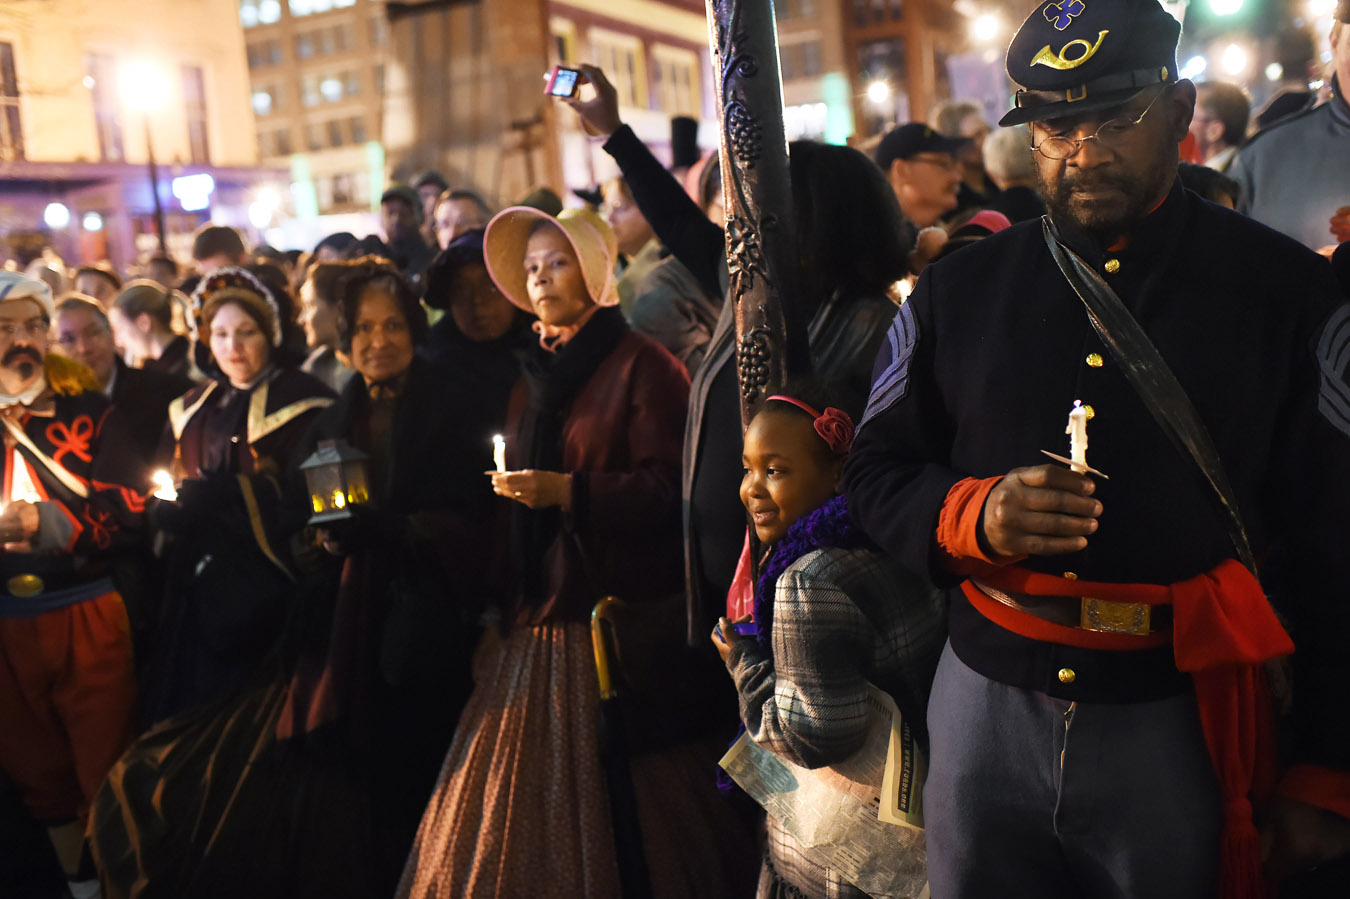 Louis Carter, right, and others gather outside Ford's Theatre in remembrance of the 150th anniversary of President Abraham Lincoln being assassinated on Tuesday April 14, 2015 in Washington, DC. Lincoln was shot at Ford's Theater on the night of April 14, 1865. He died on the morning of April 15, 1865. (Photo by Matt McClain/ The Washington Post)